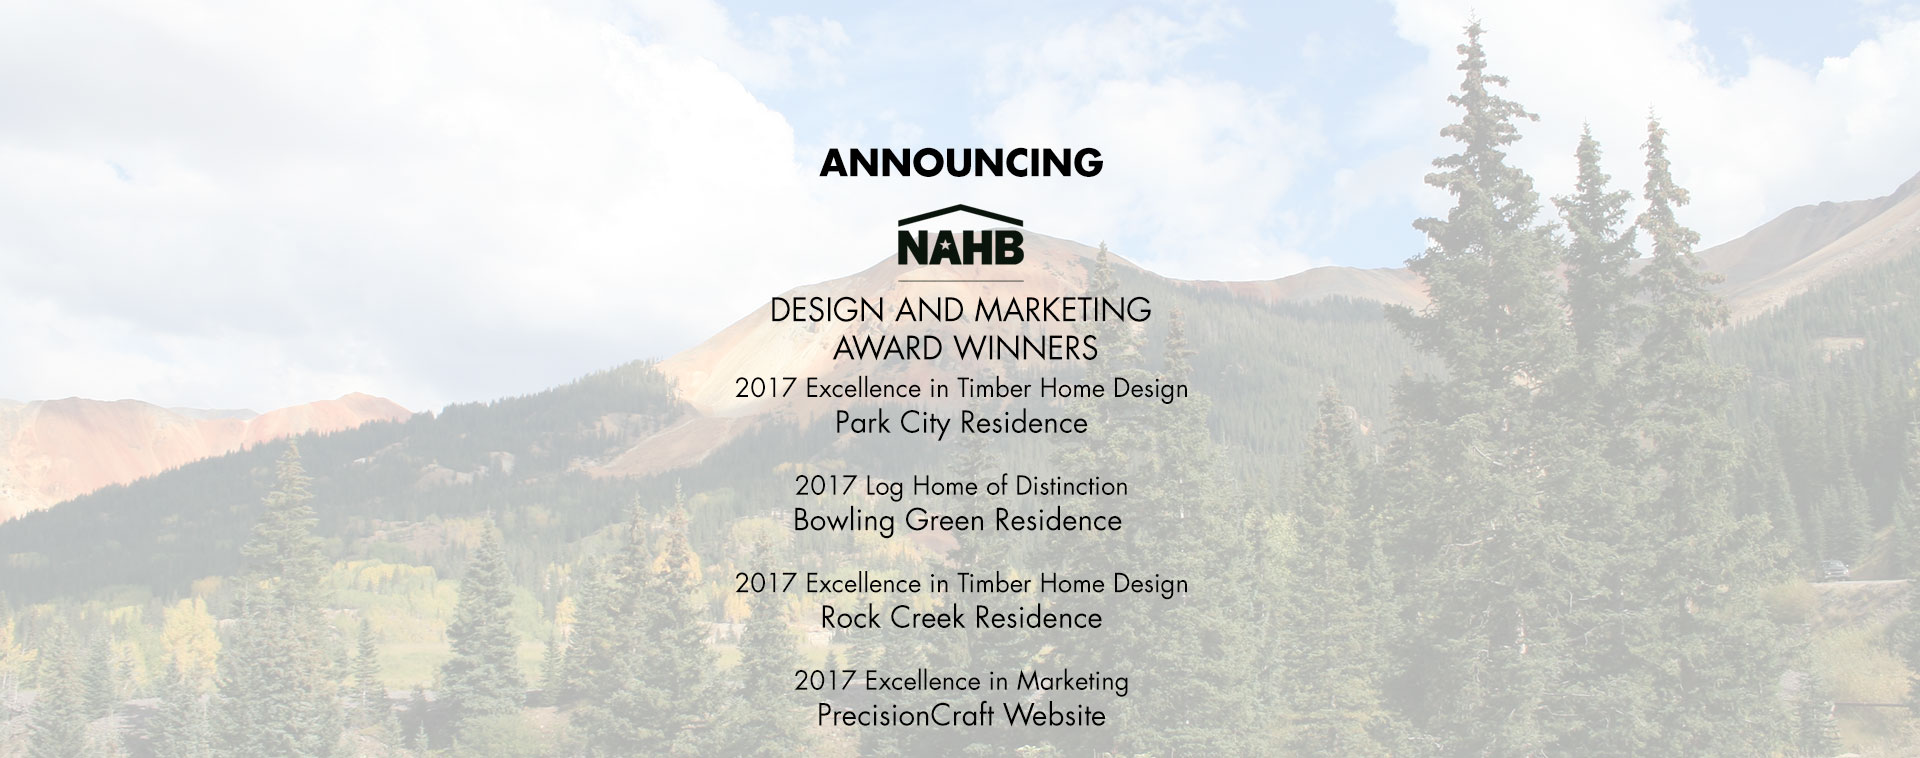 NAHB Award Winners